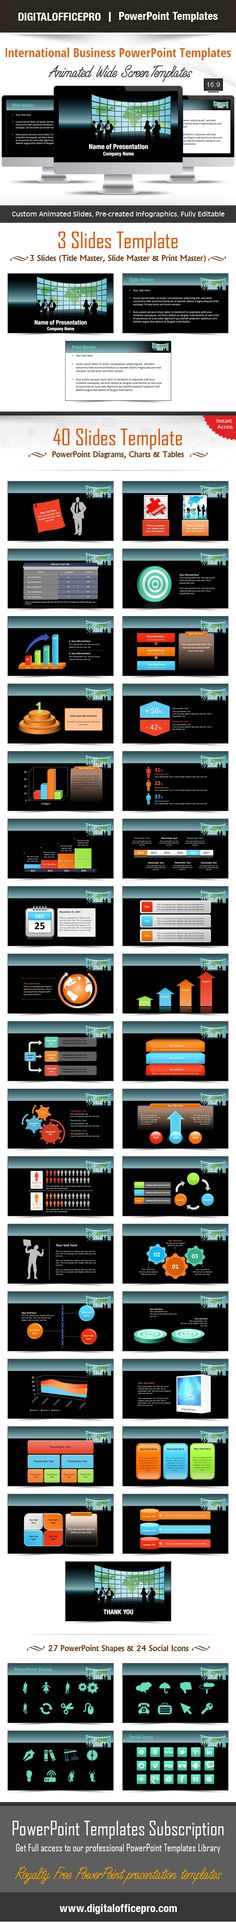 Internet usage powerpoint template backgrounds download shape impress and engage your audience with international business powerpoint template and international business powerpoint backgrounds from toneelgroepblik Choice Image